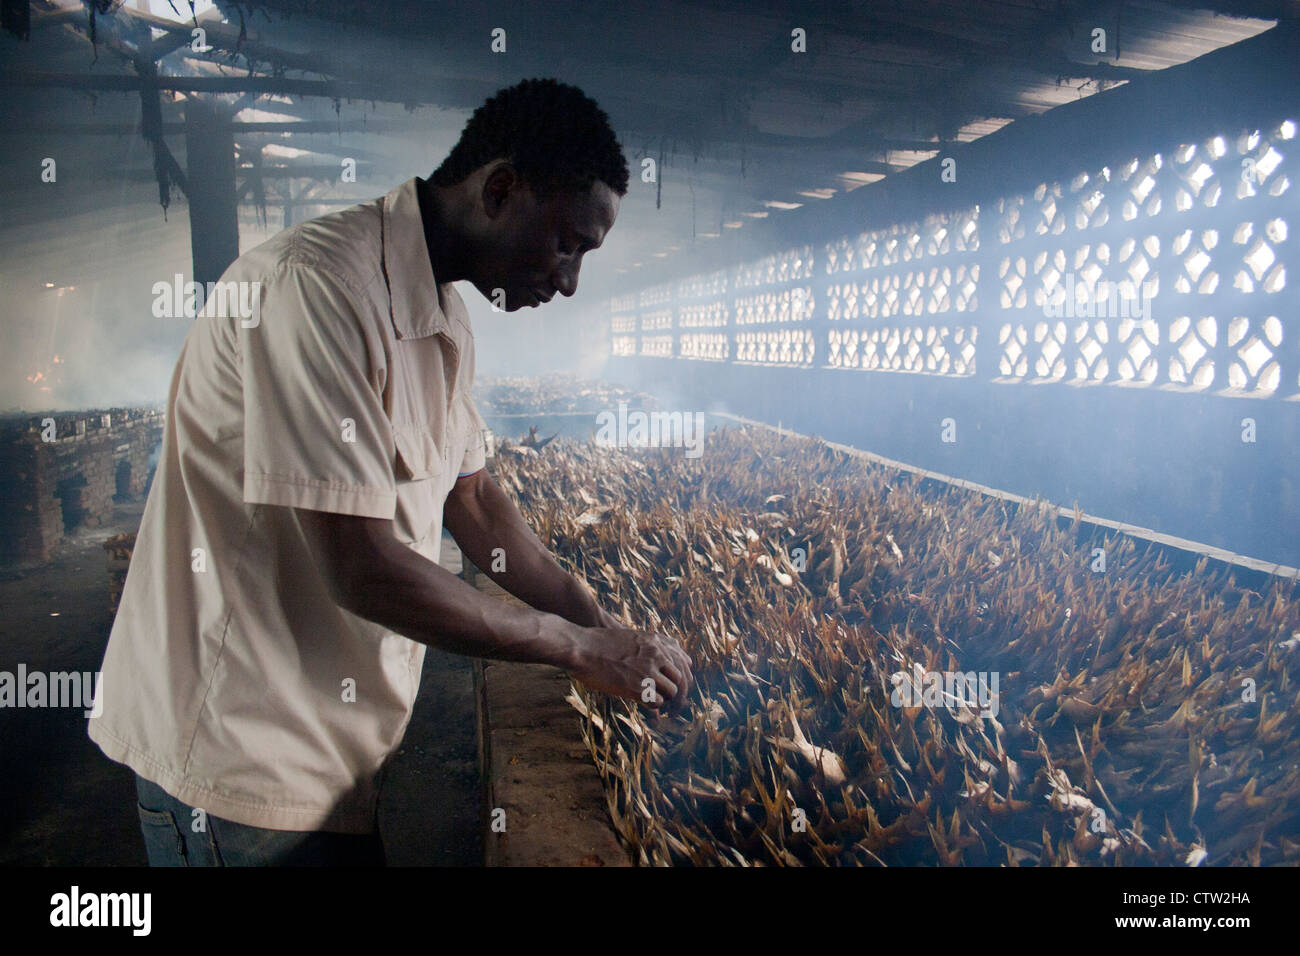 Man arranging fish in smokehouse, The Gambia, Africa. - Stock Image